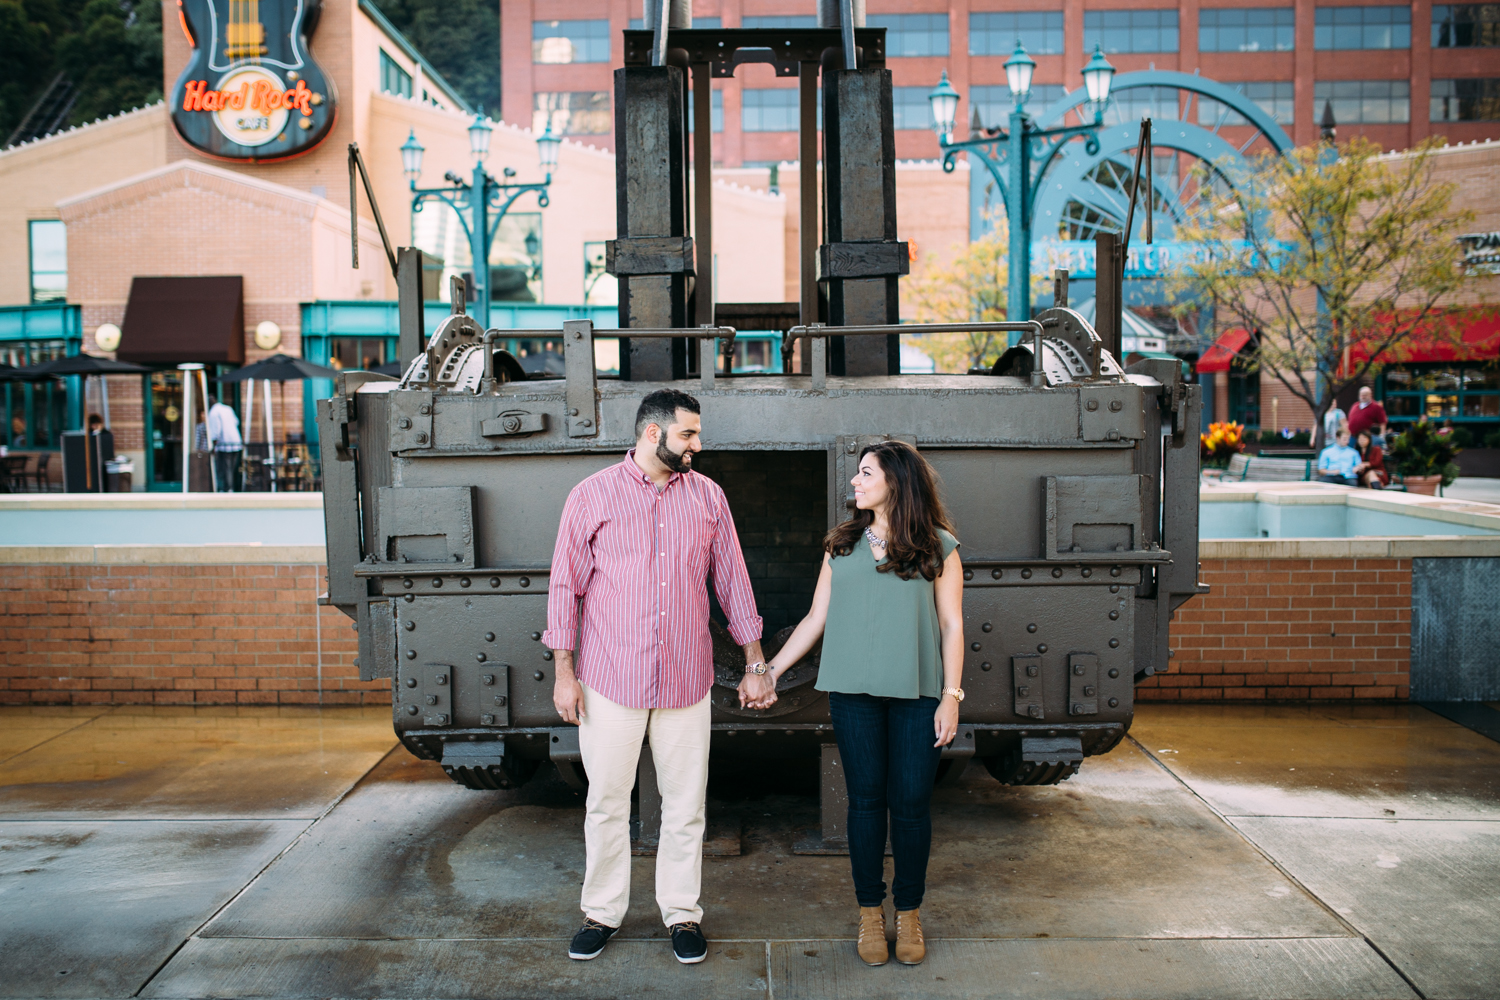 Ashley-reed-photography-pittsburgh-engagement-engagementphotography-engagementphotographer-stationsquare-statio-square-pittsburghengagementphotography-9.jpg